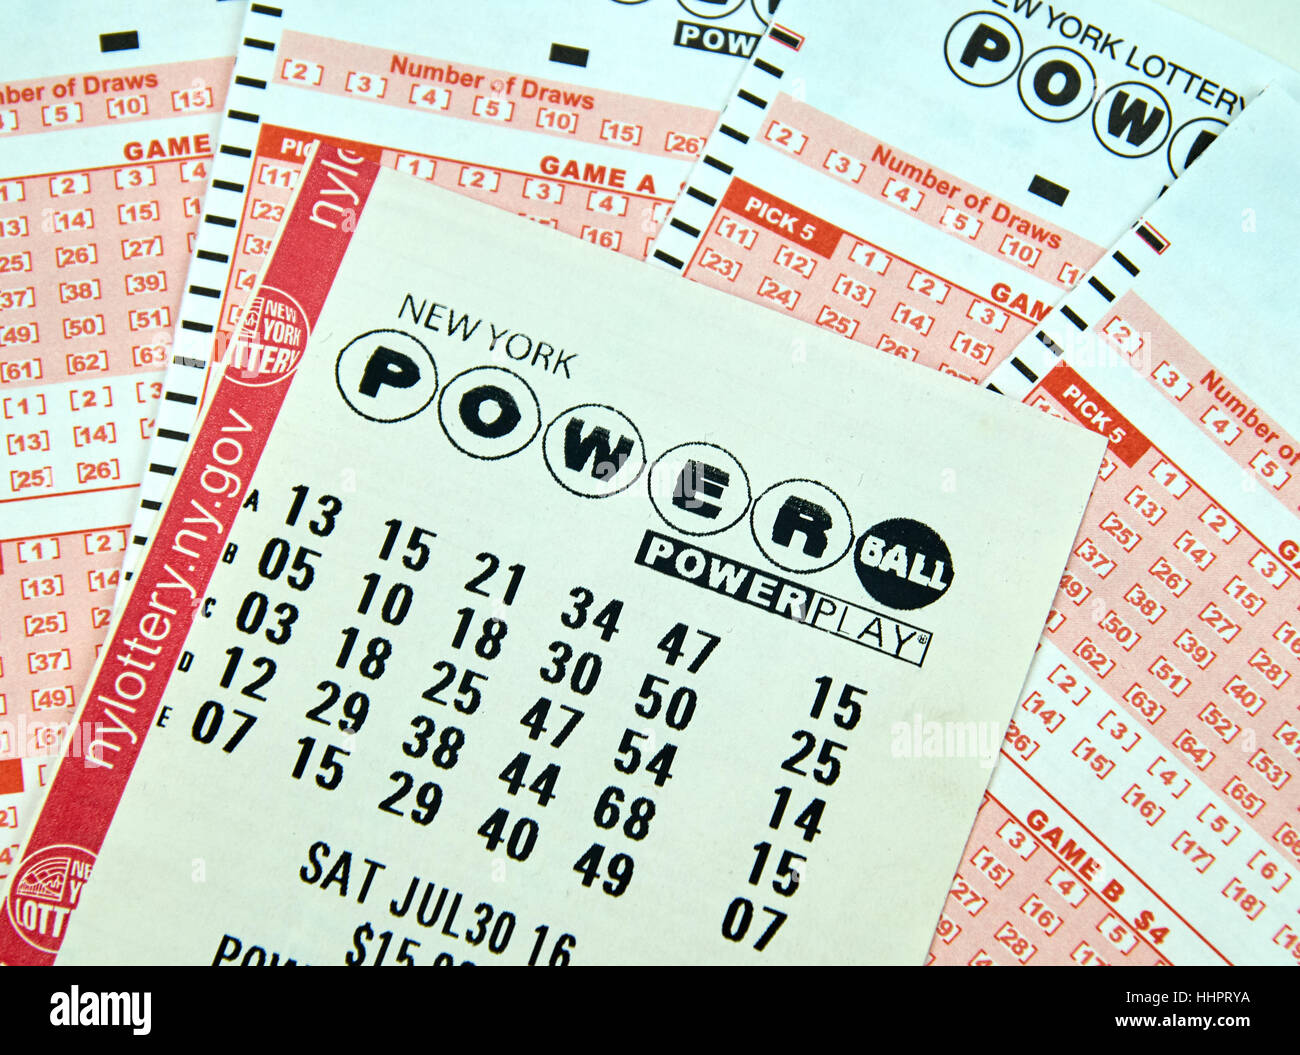 how to play powerball lottery canada